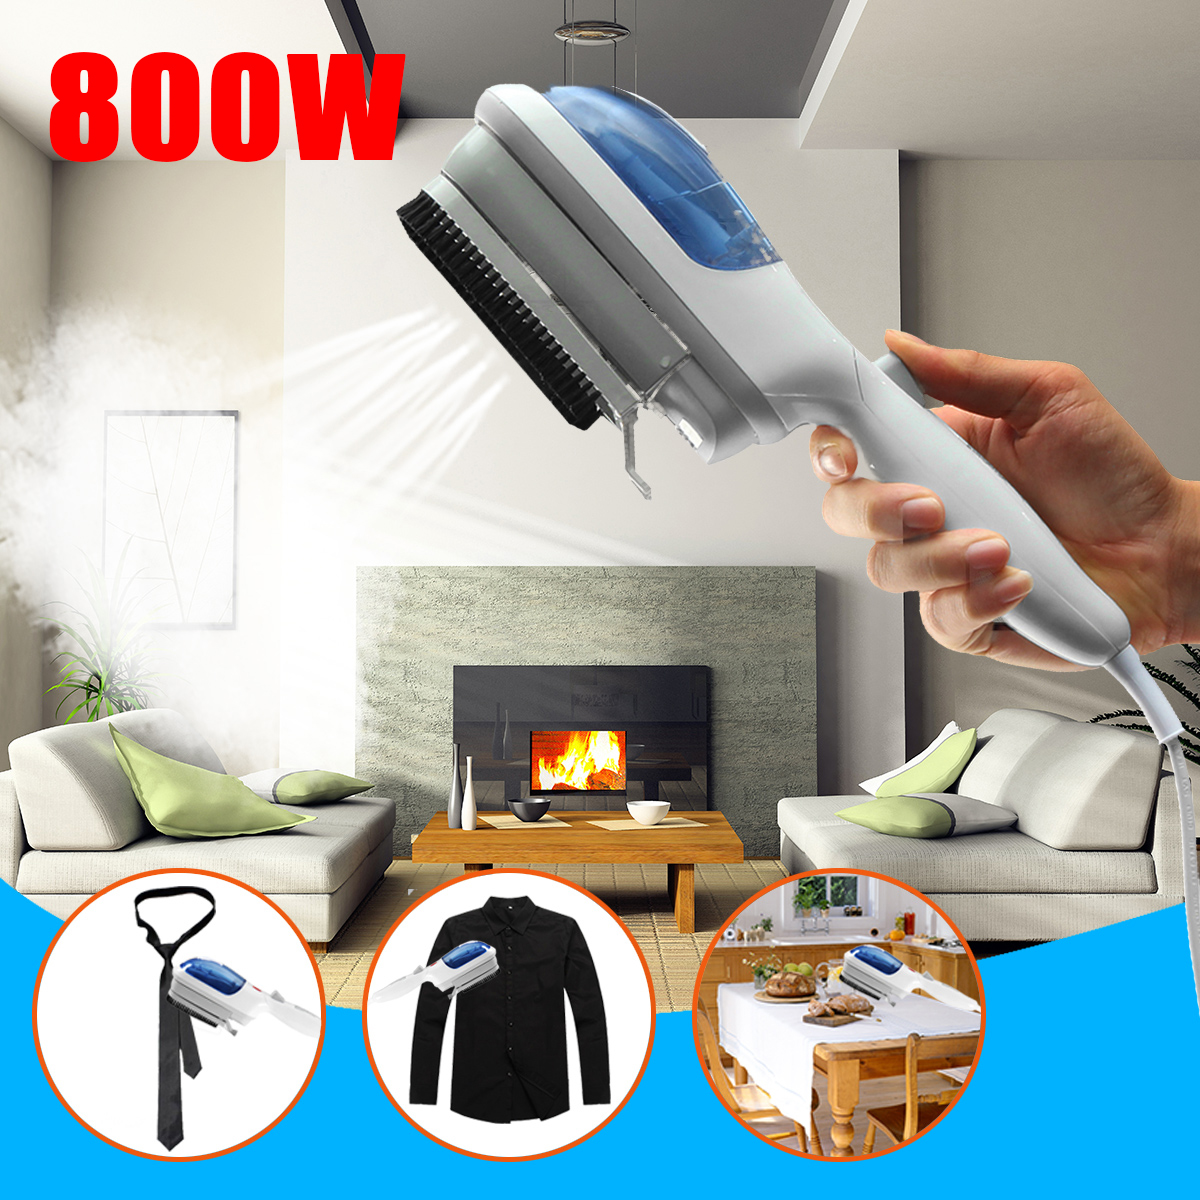 Mini;Laundry;Electric;Office;Travel;Hand-Held;steamiron;Suits;Dress;Clothes Portable Electric Handheld Brush Steamer Iron , Home Garment & Fabric &Clothes Handheld Steamer, US 110V